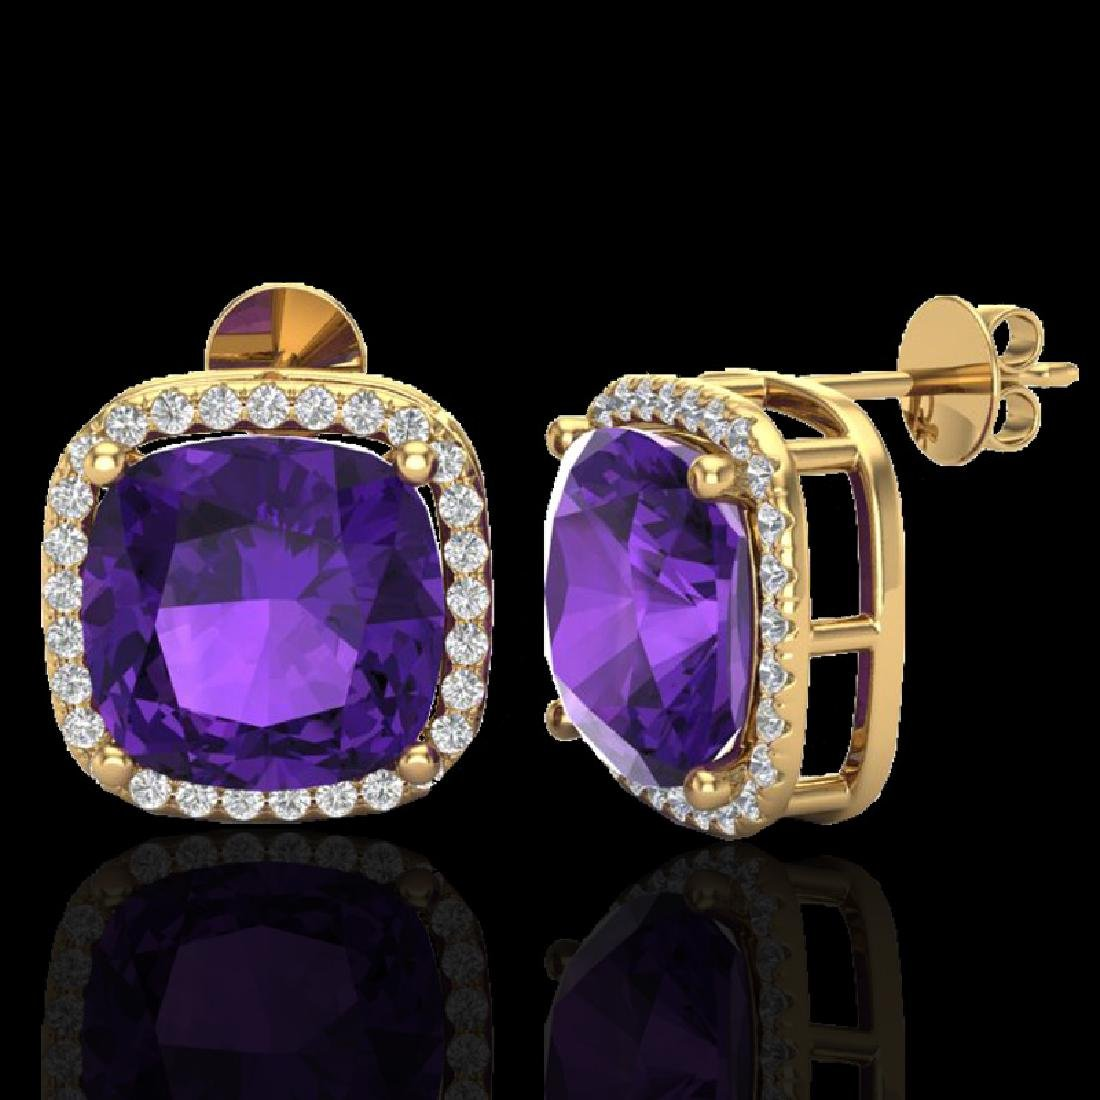 12 CTW Amethyst & Micro Pave Halo VS/SI Diamond - 2